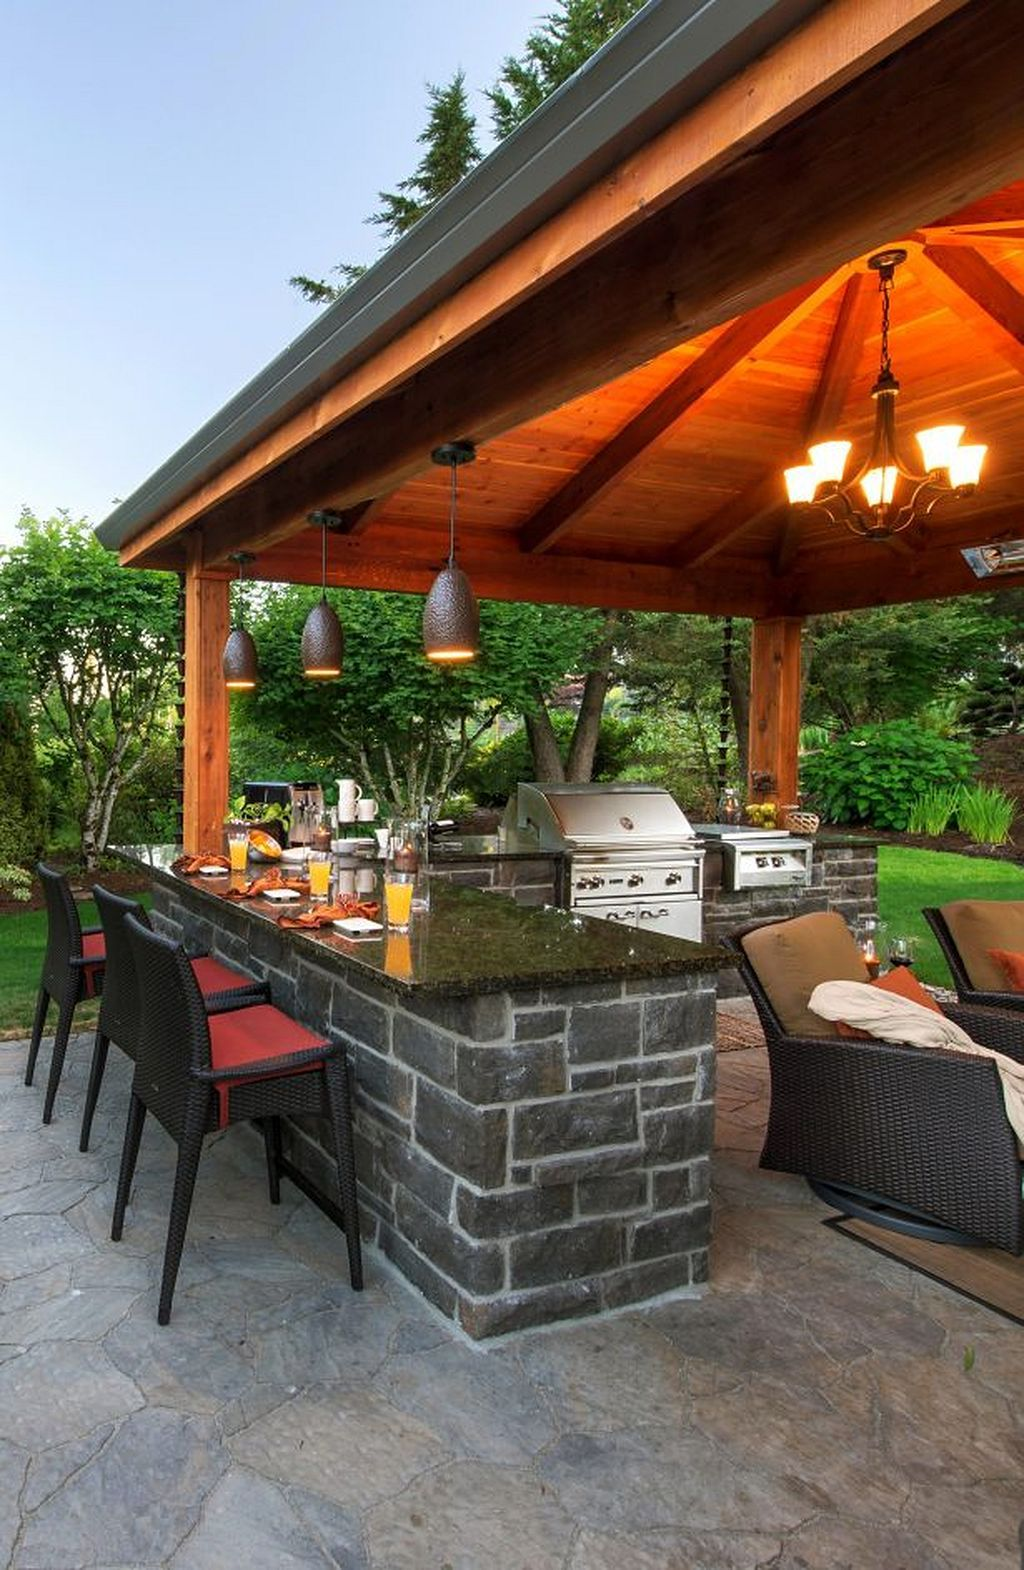 Stunning 50+ Incredible BBQ Grill Design Ideas For Your Patio Https://hgmagz